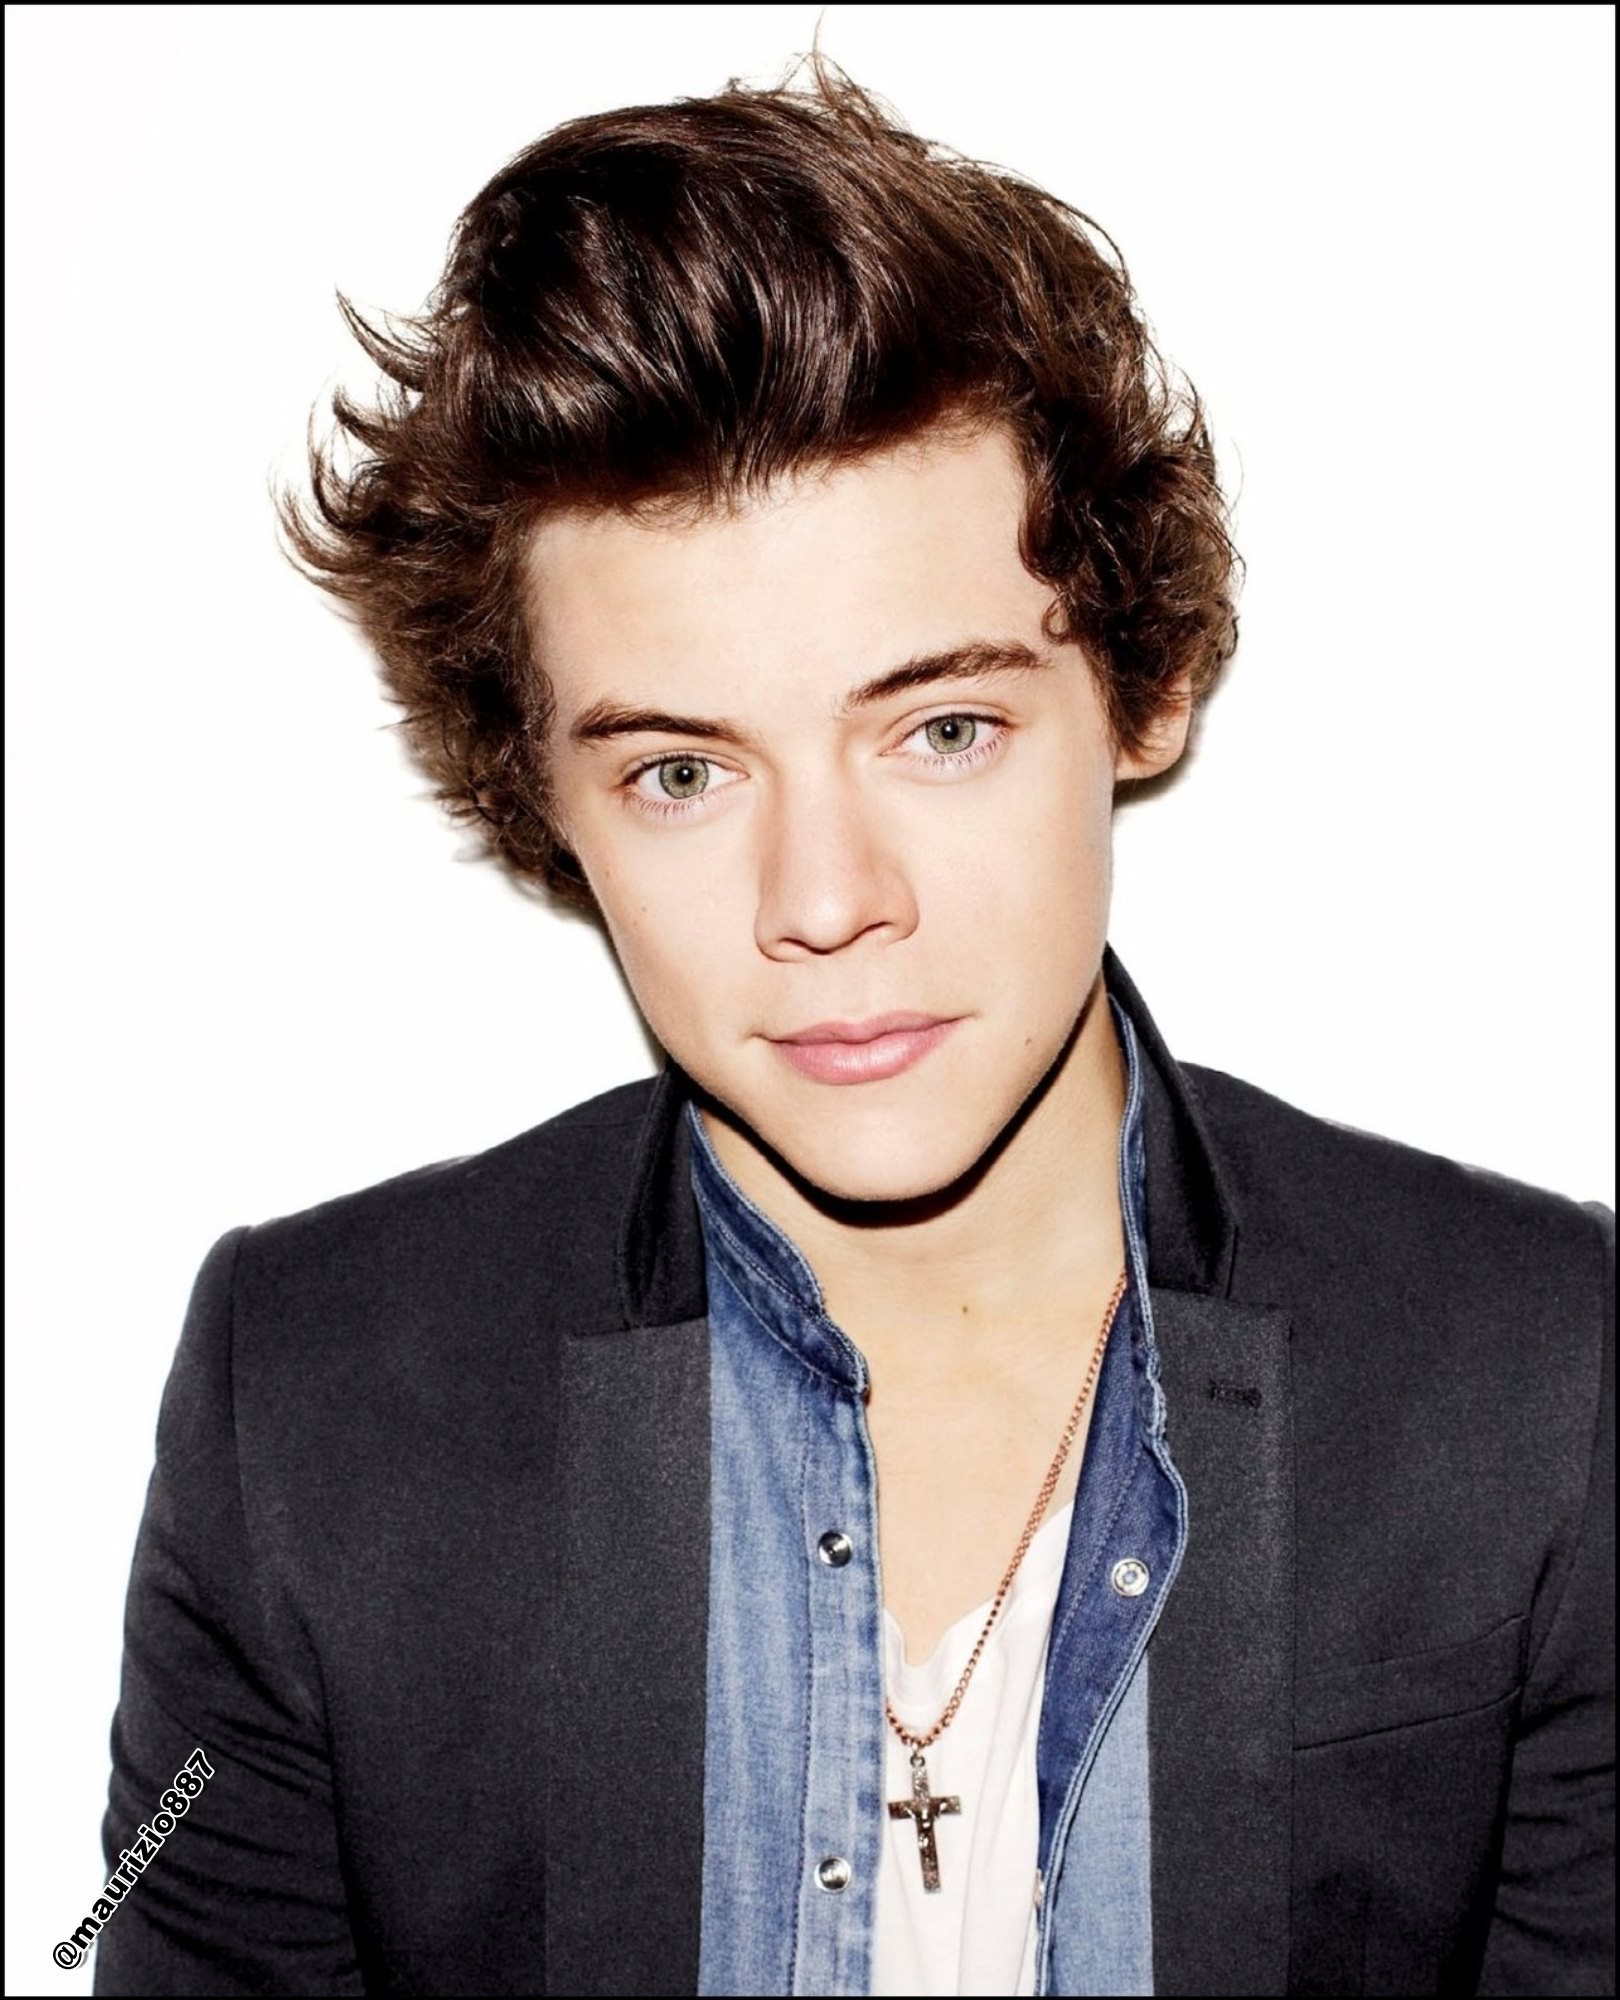 harry styles,Glamour Magazine photoshoot,2013